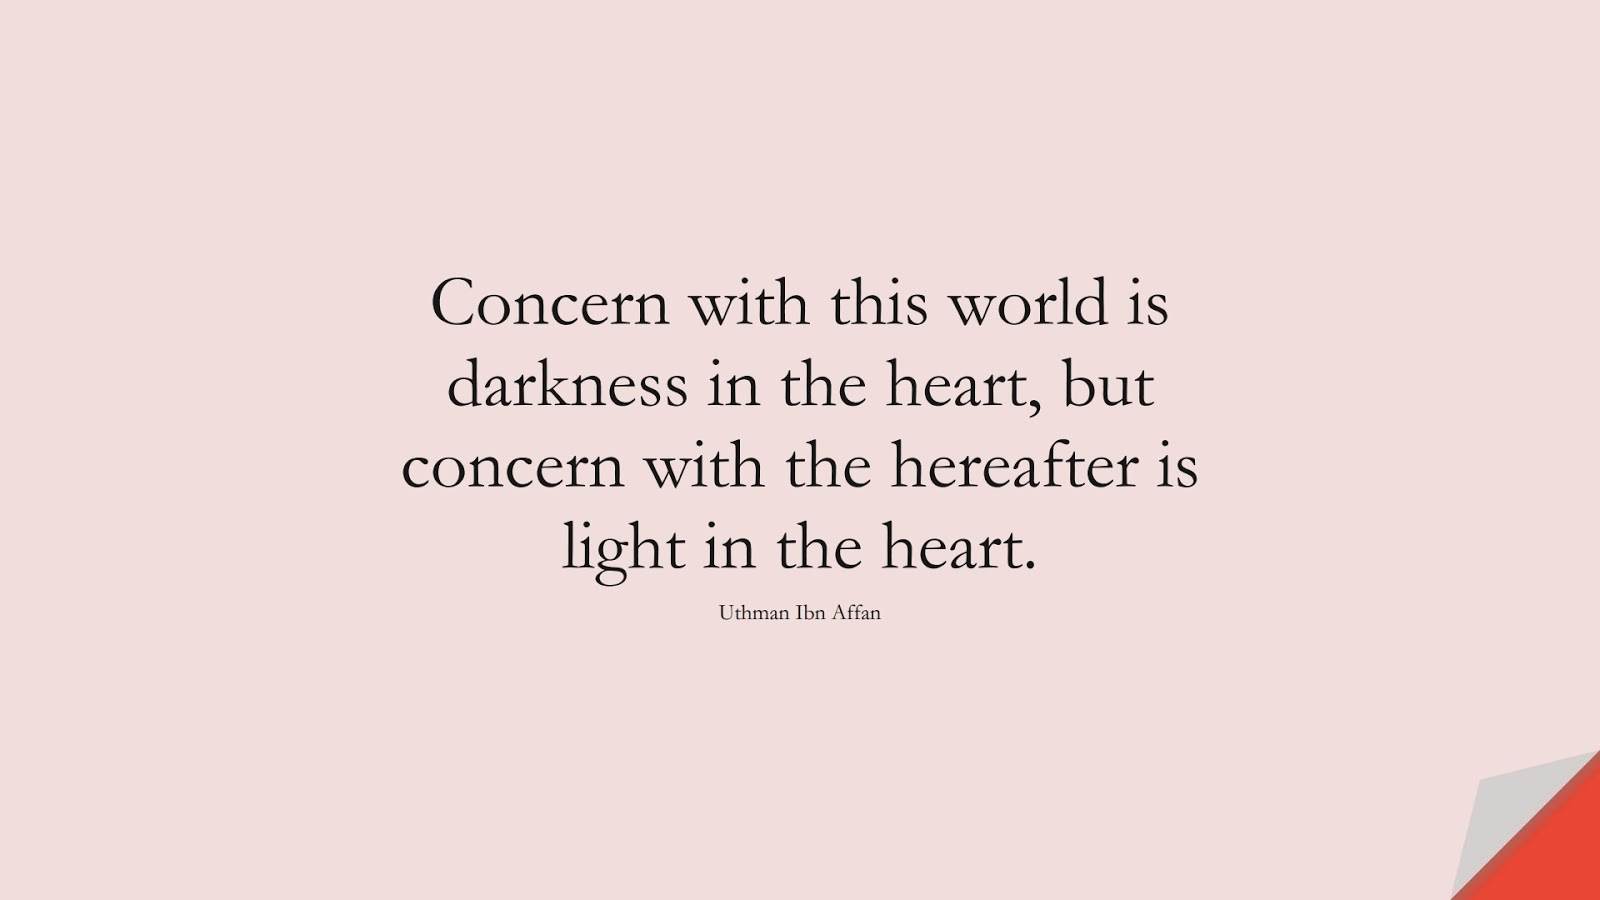 Concern with this world is darkness in the heart, but concern with the hereafter is light in the heart. (Uthman Ibn Affan);  #UthmanQuotes